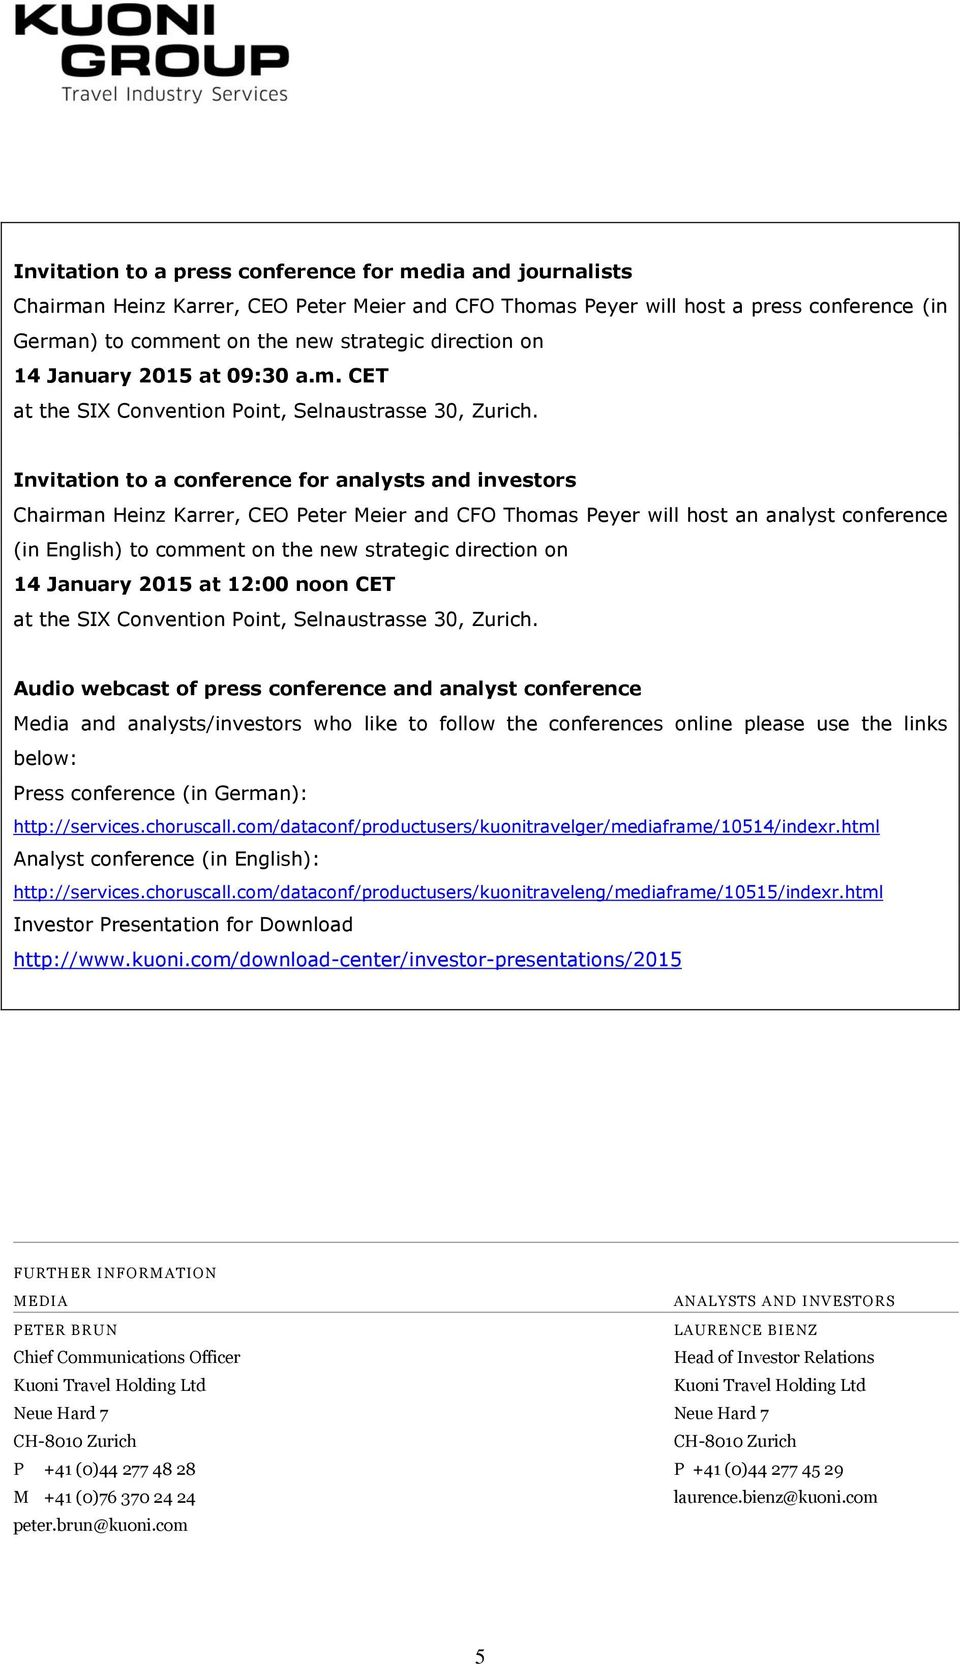 Invitation to a conference for analysts and investors Chairman Heinz Karrer, CEO Peter Meier and CFO Thomas Peyer will host an analyst conference (in English) to comment on the new strategic